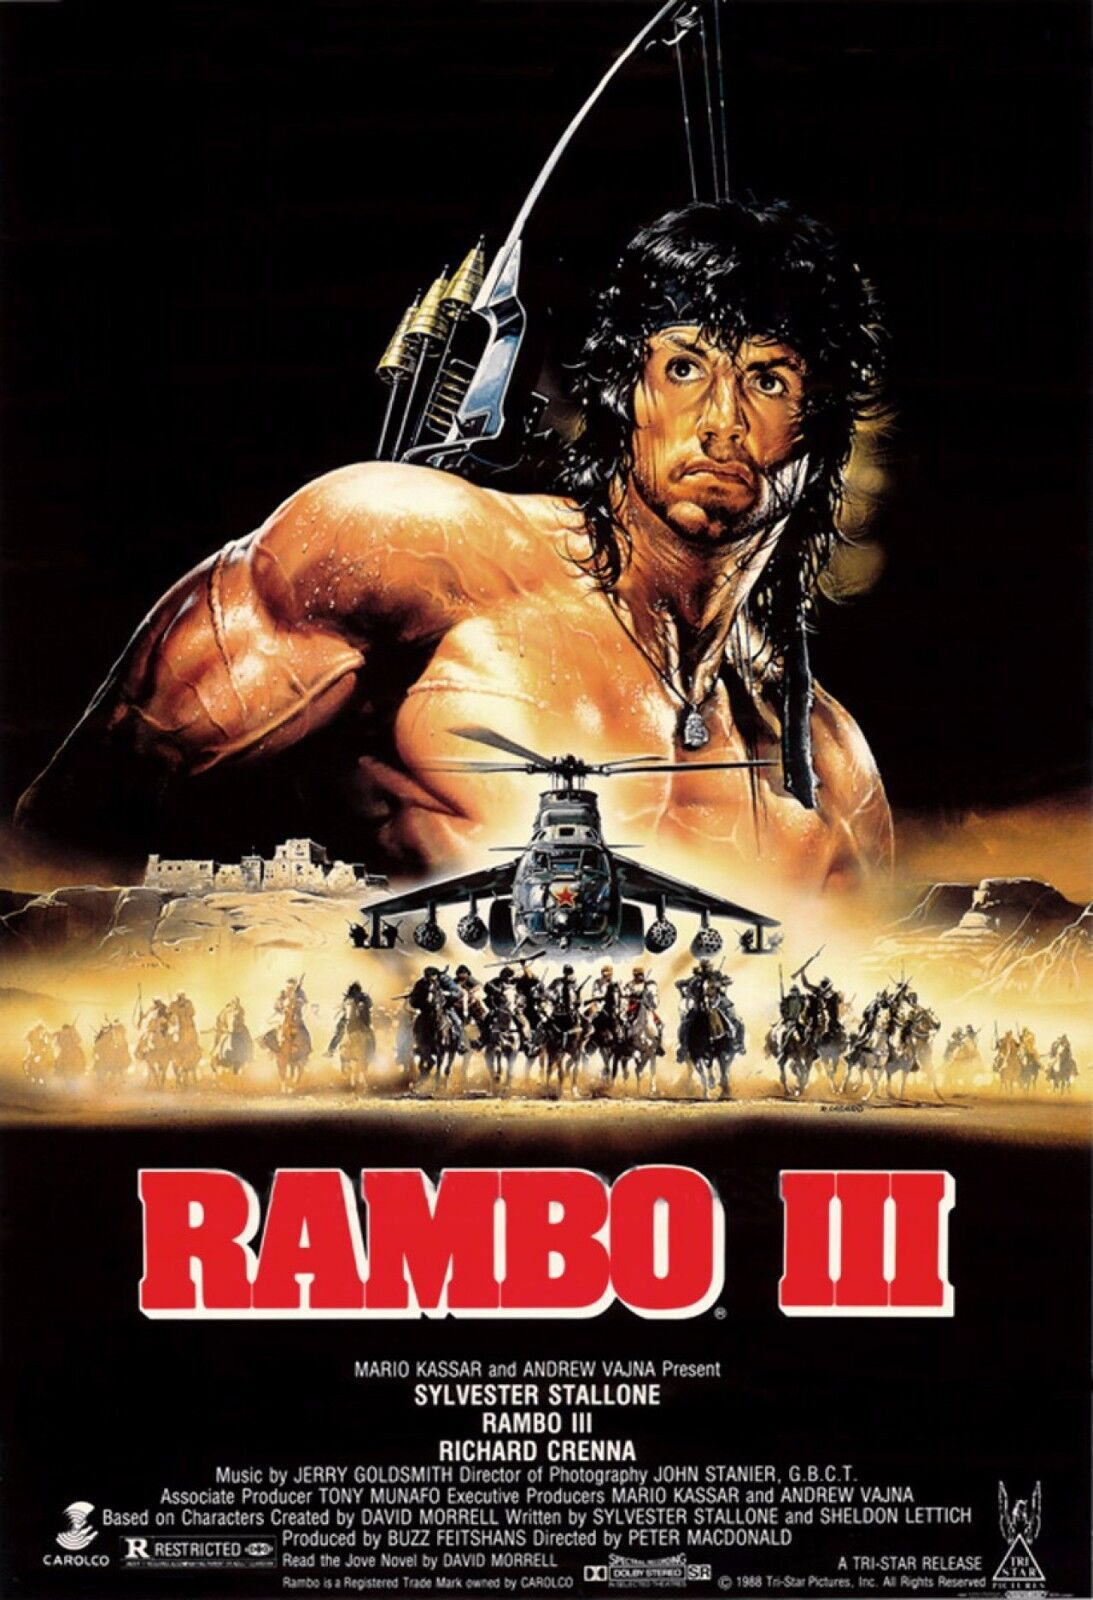 First Blood Rambo Sylvester Stallone movie poster 24x33 inches 1982